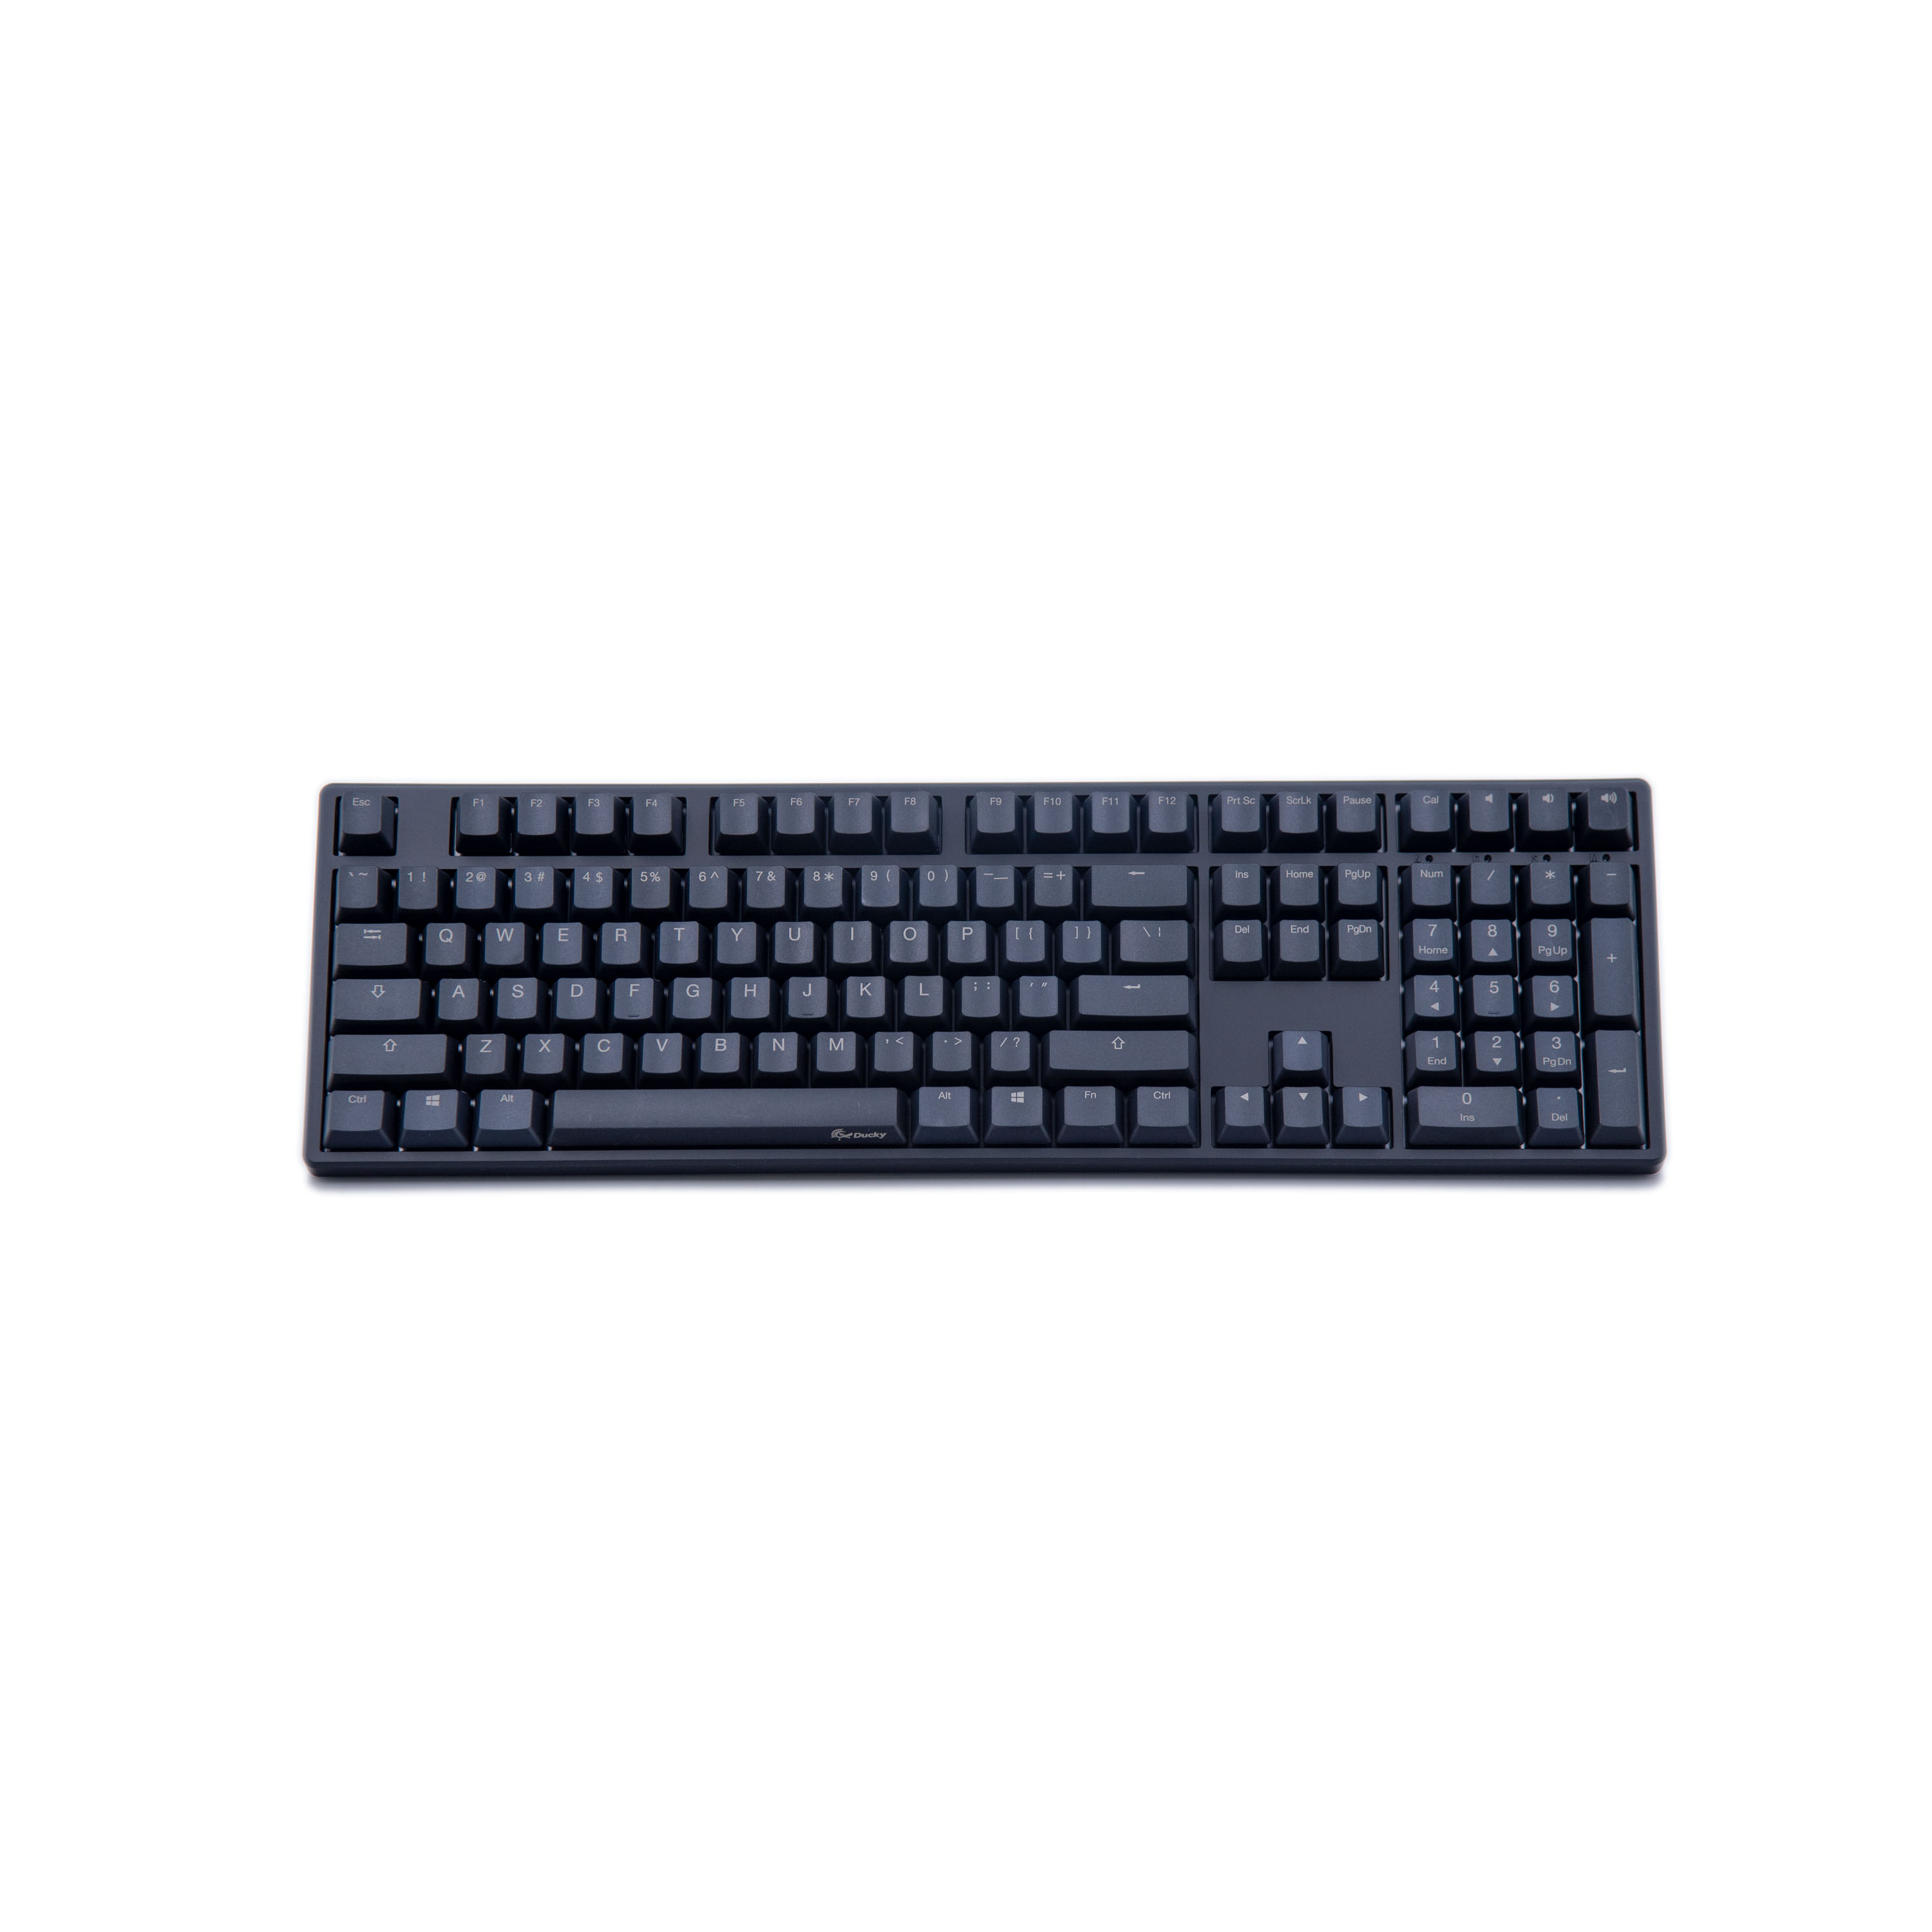 Image of Ducky One DKON1608 Cherry MX Blue Non-Backlit Mechanical Keyboard DKON1608-CHKPLAAB1 - Black (US Layout)